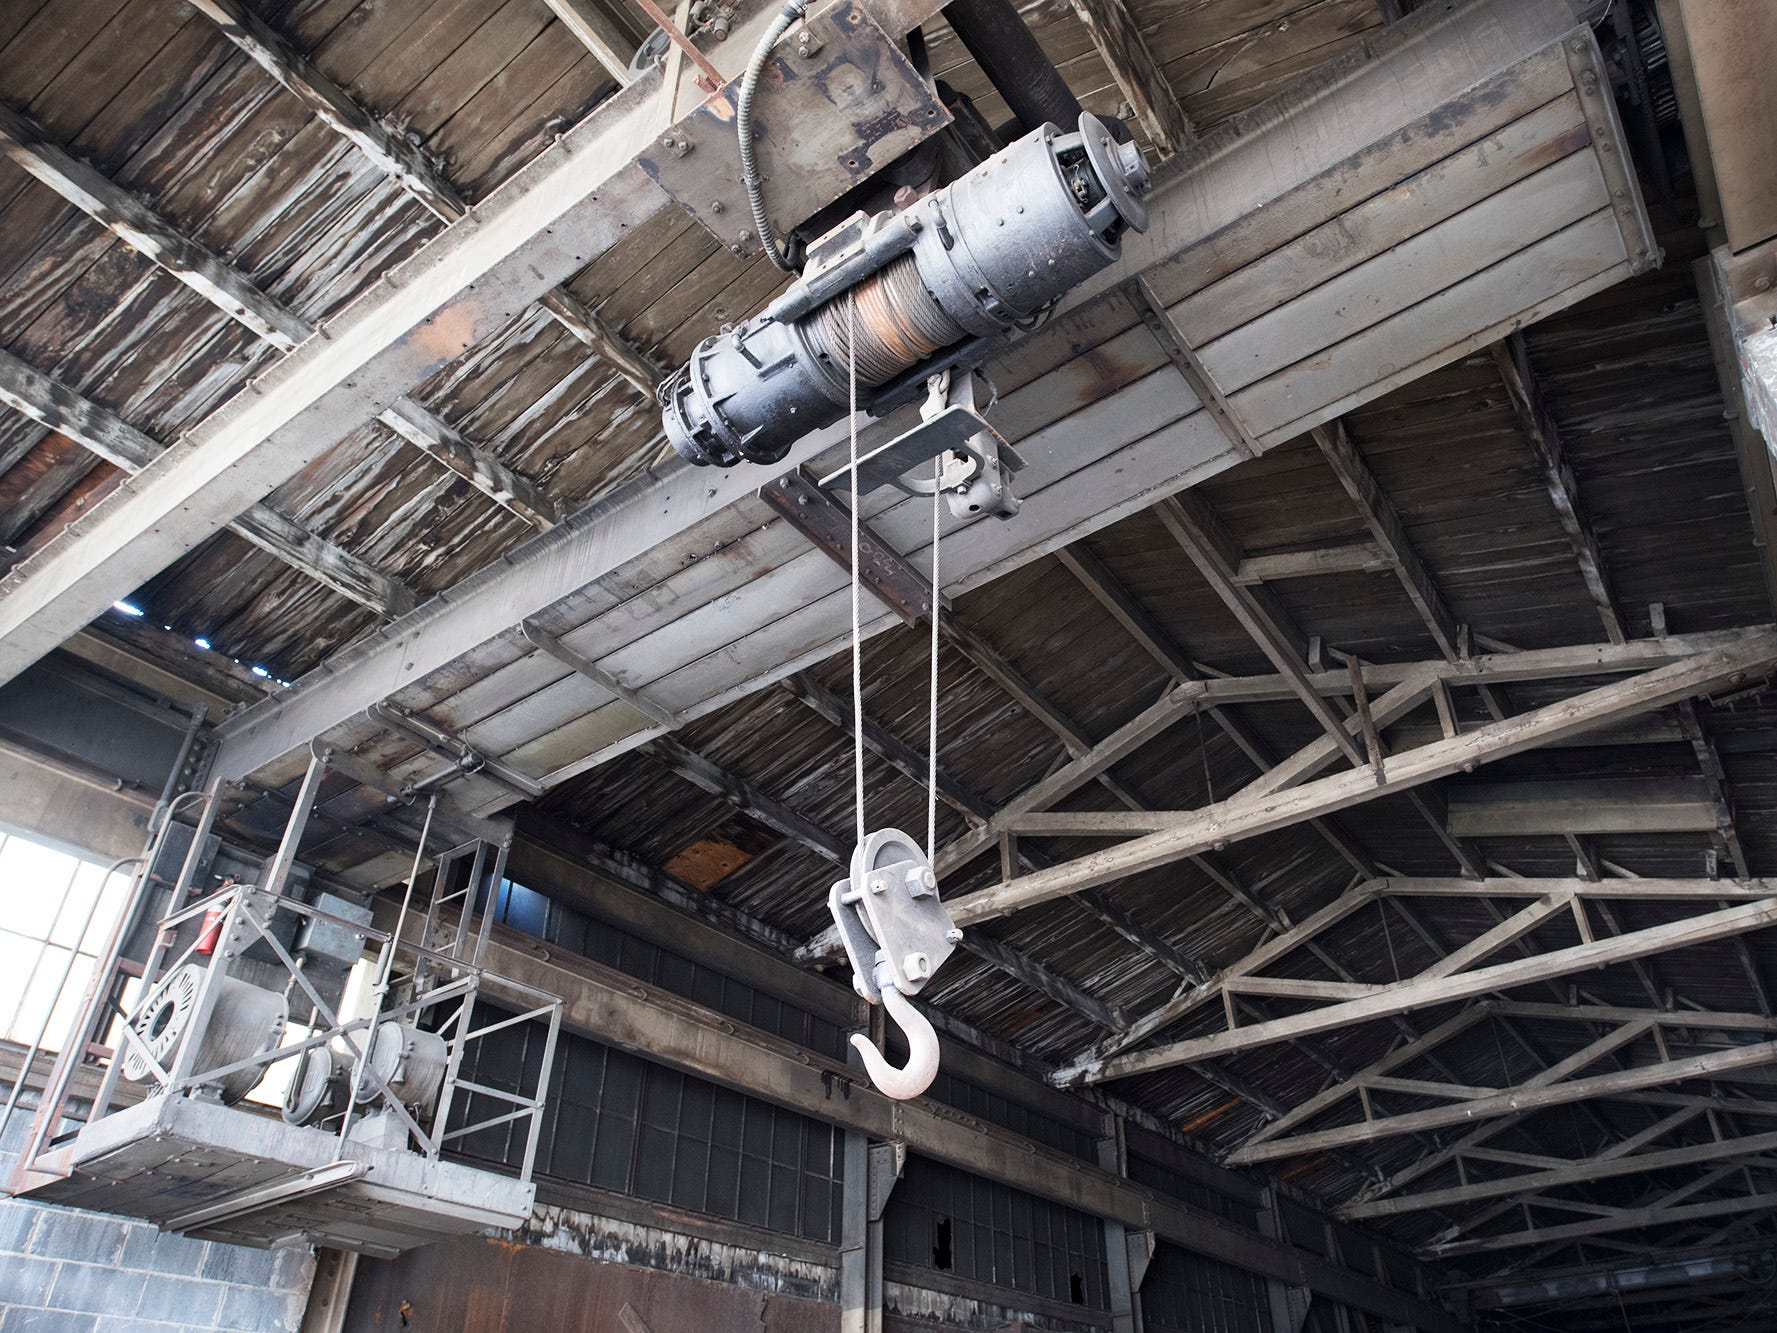 Some of the cranes are still wired for D.C. power inside the foundry building at 145 North Hartley Street in York. The 54,000-square-foot building has been gutted and refurbished however, no initial plans have been made for the site.